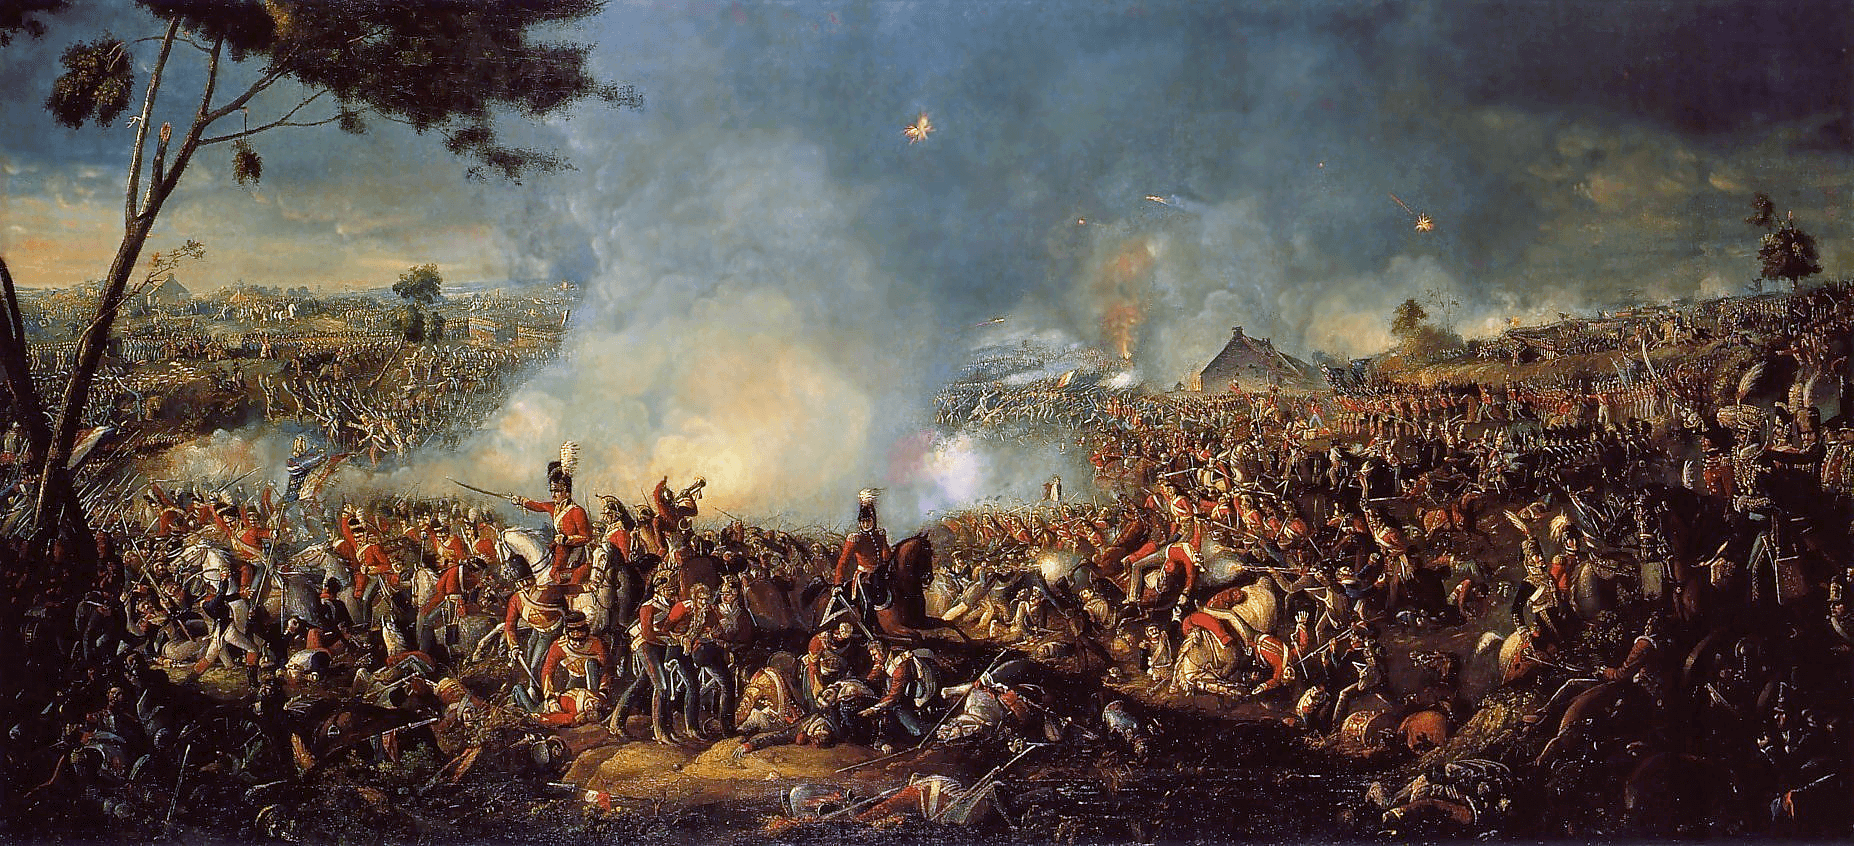 Batalla de Waterloo (Junio 1815)